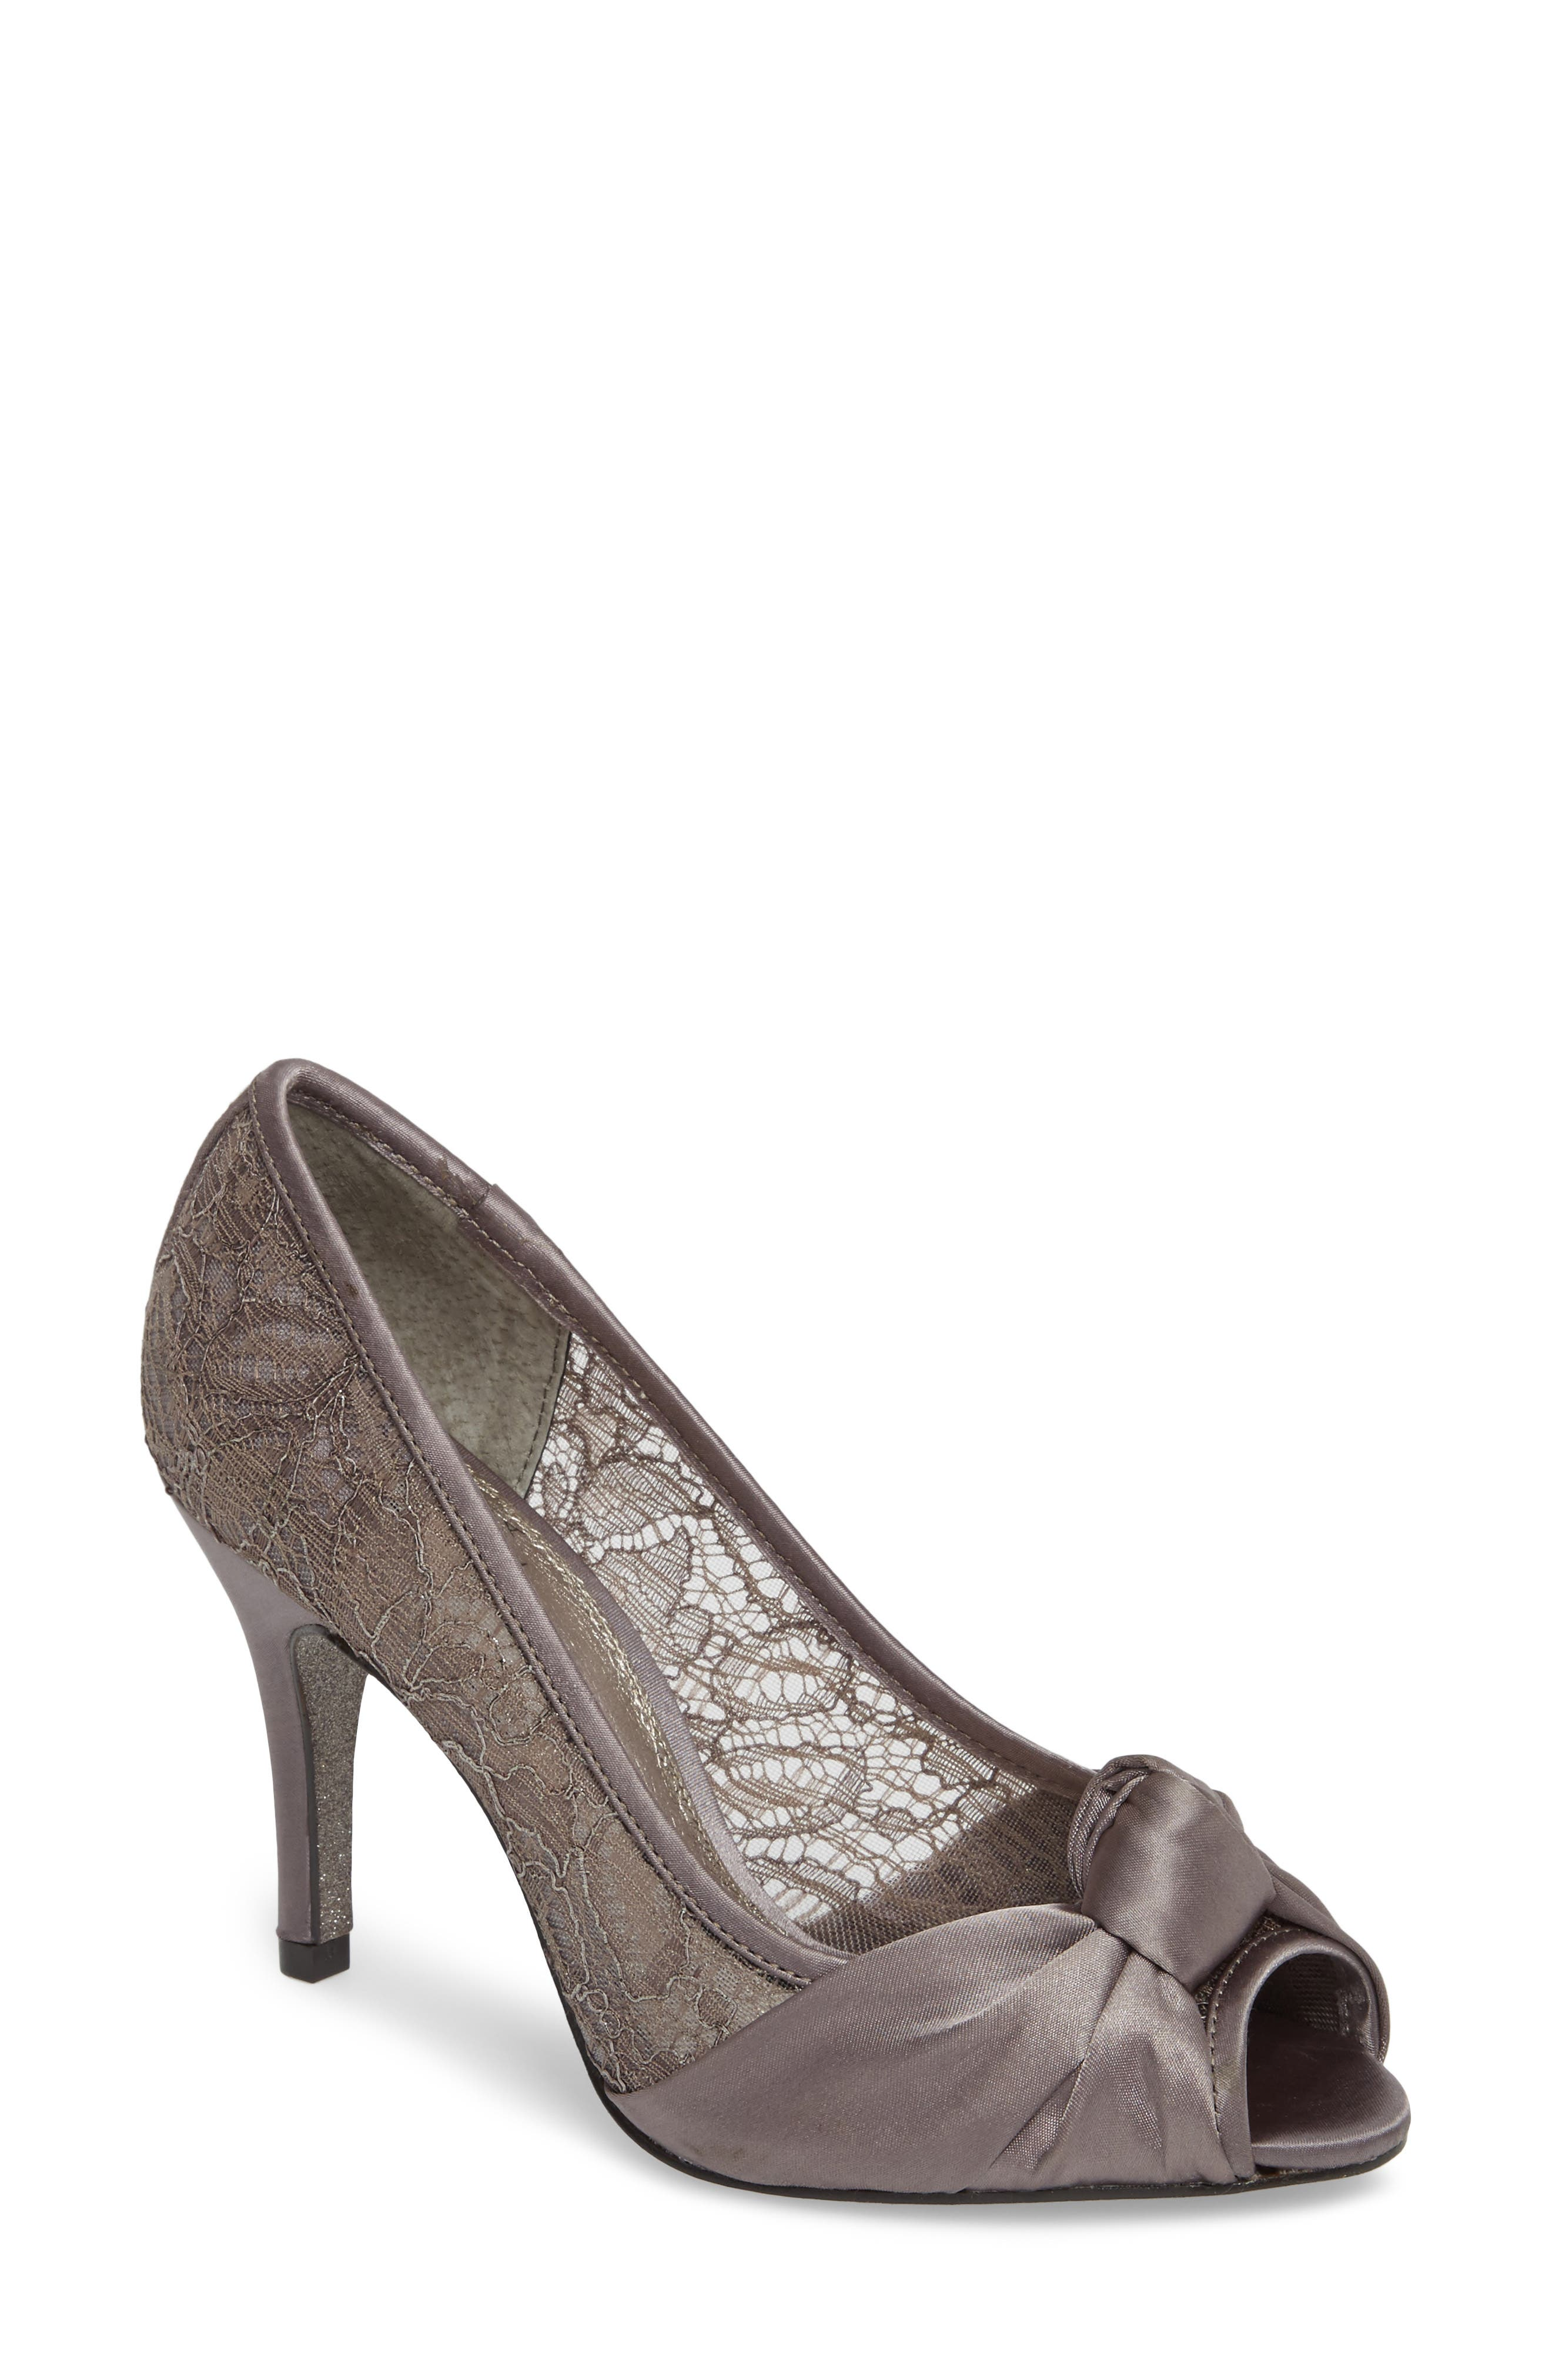 Francesca Knotted Peep Toe Pump,                             Main thumbnail 1, color,                             Steel Satin